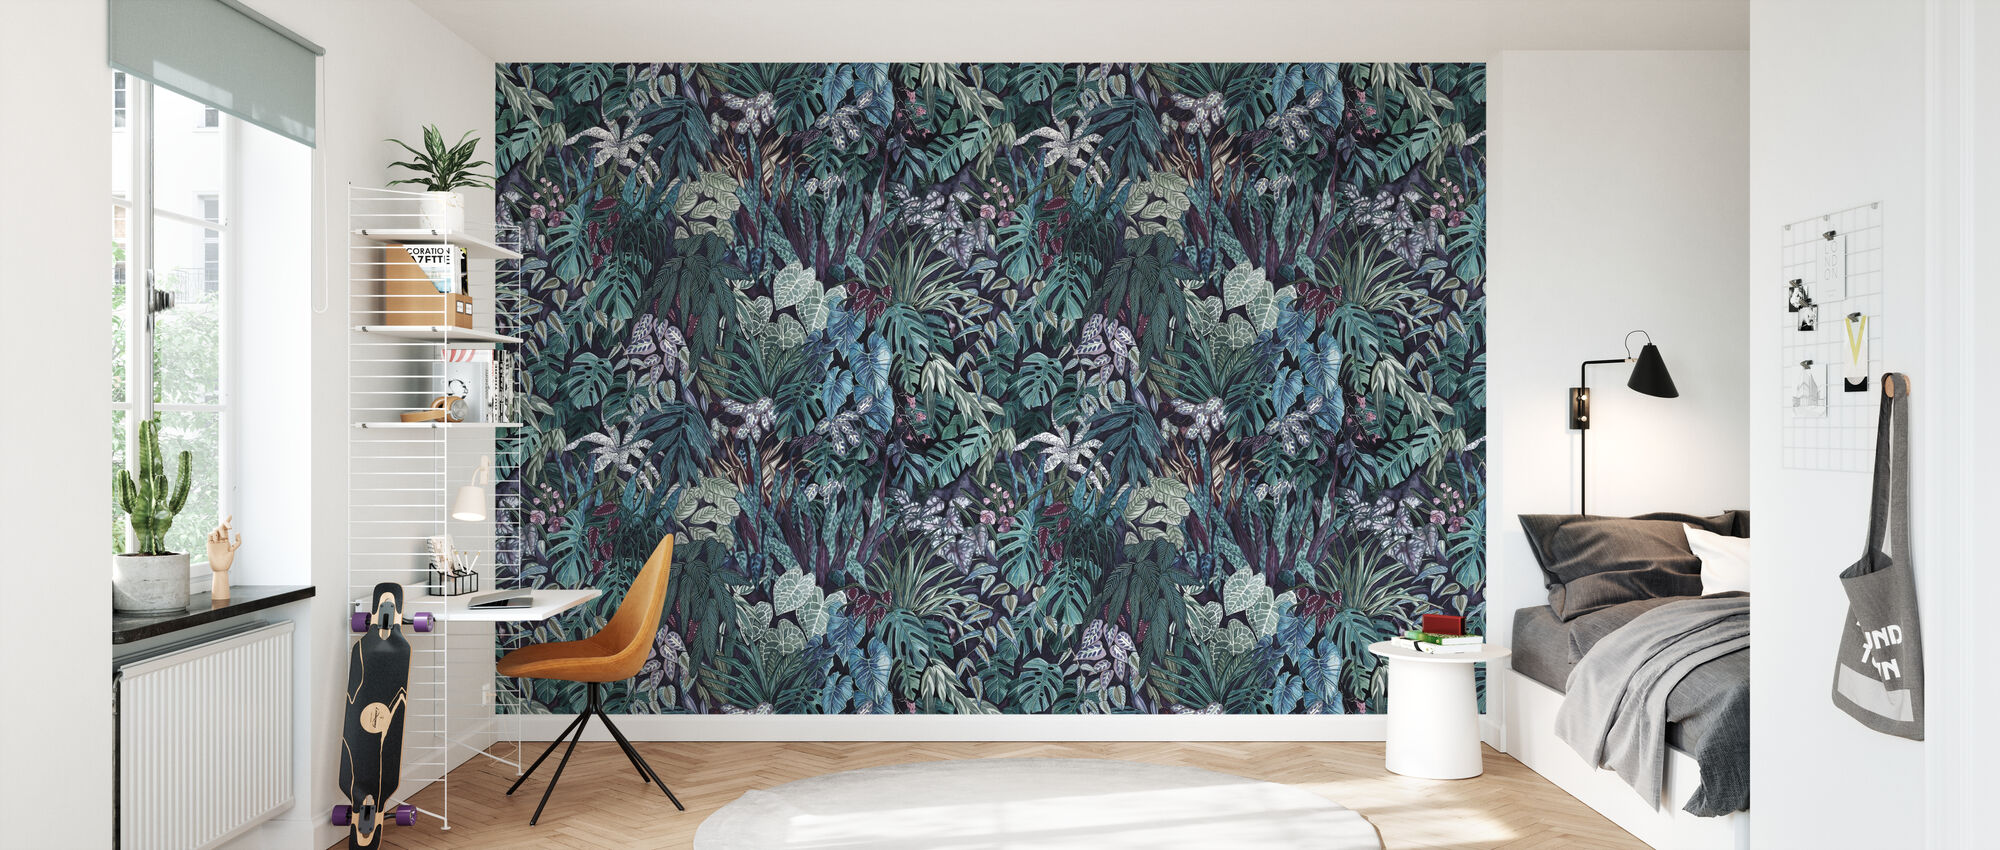 Tanglewood Forest - Veridian Large - Wallpaper - Kids Room